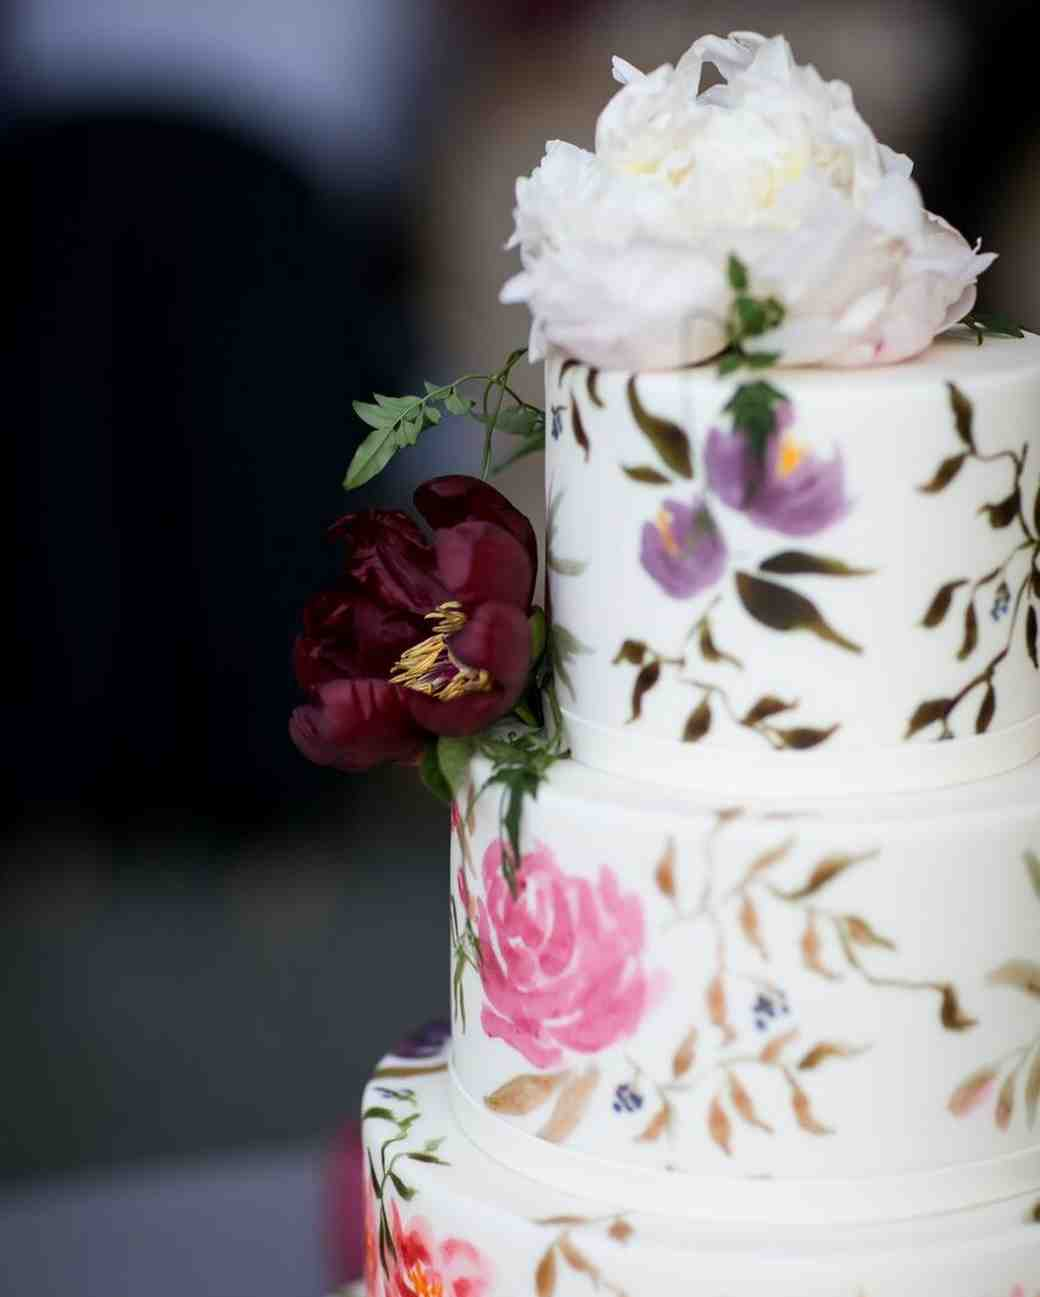 Different Wedding Cake Photos